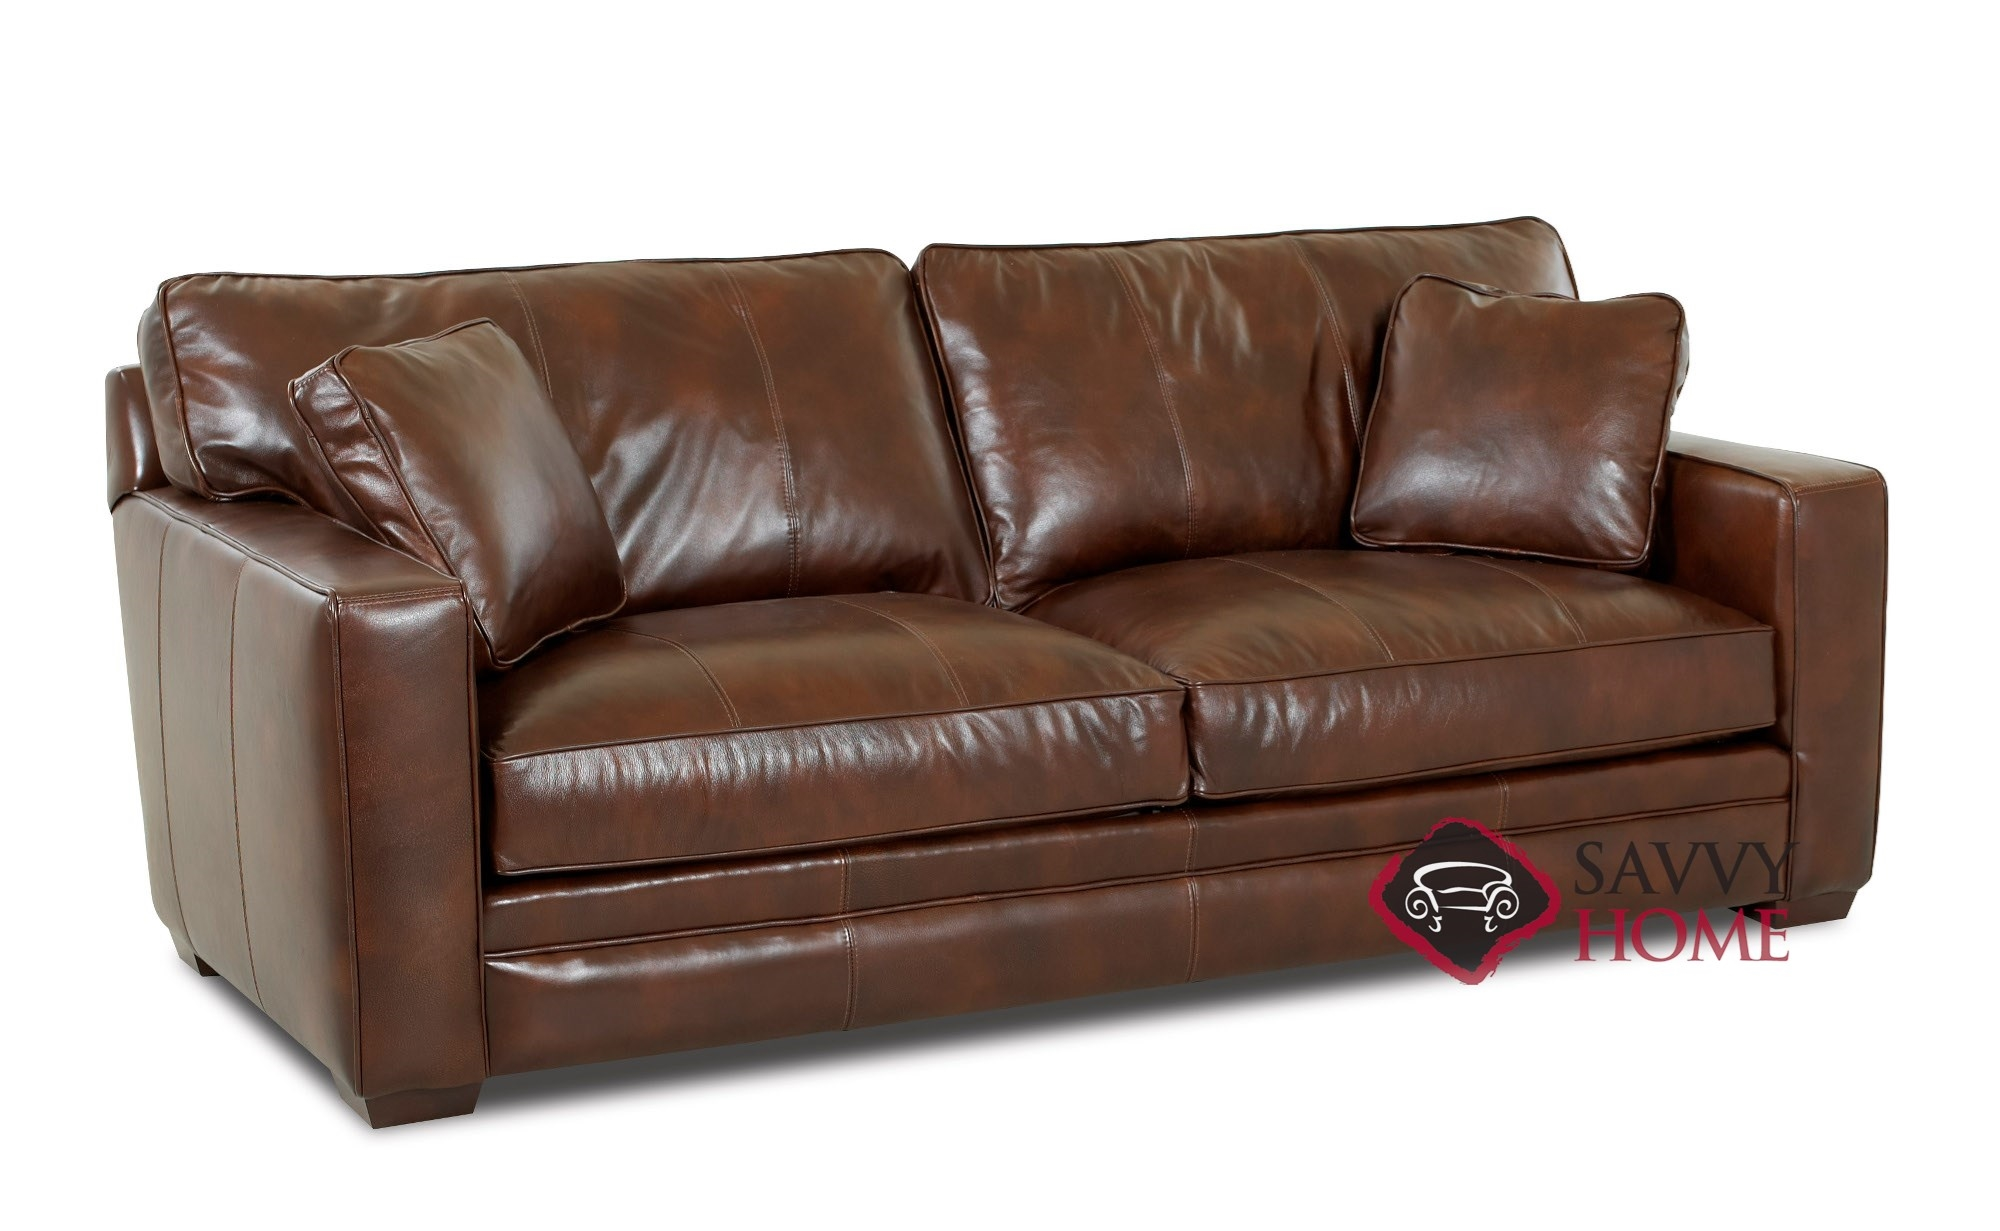 Chandler Leather Sleeper Sofas Queen By Savvy Is Fully Customizable By You | SavvyHomeStore.com